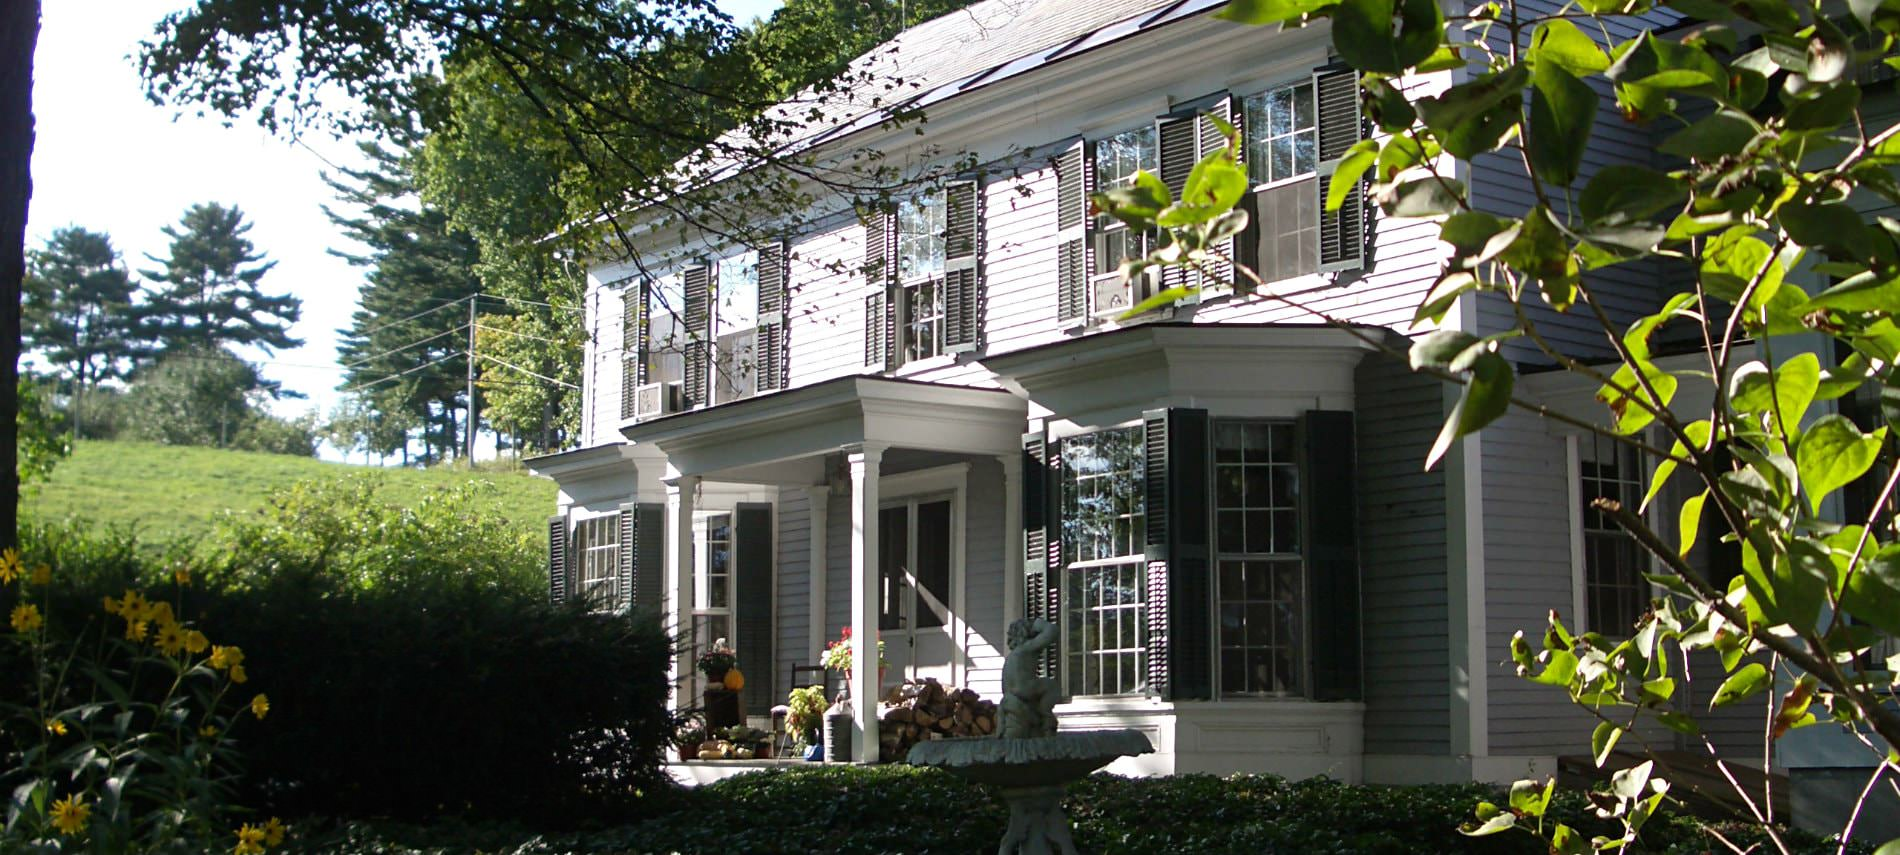 Inn at Valley Farms - white two-story house with covered entry surrounded by greenery